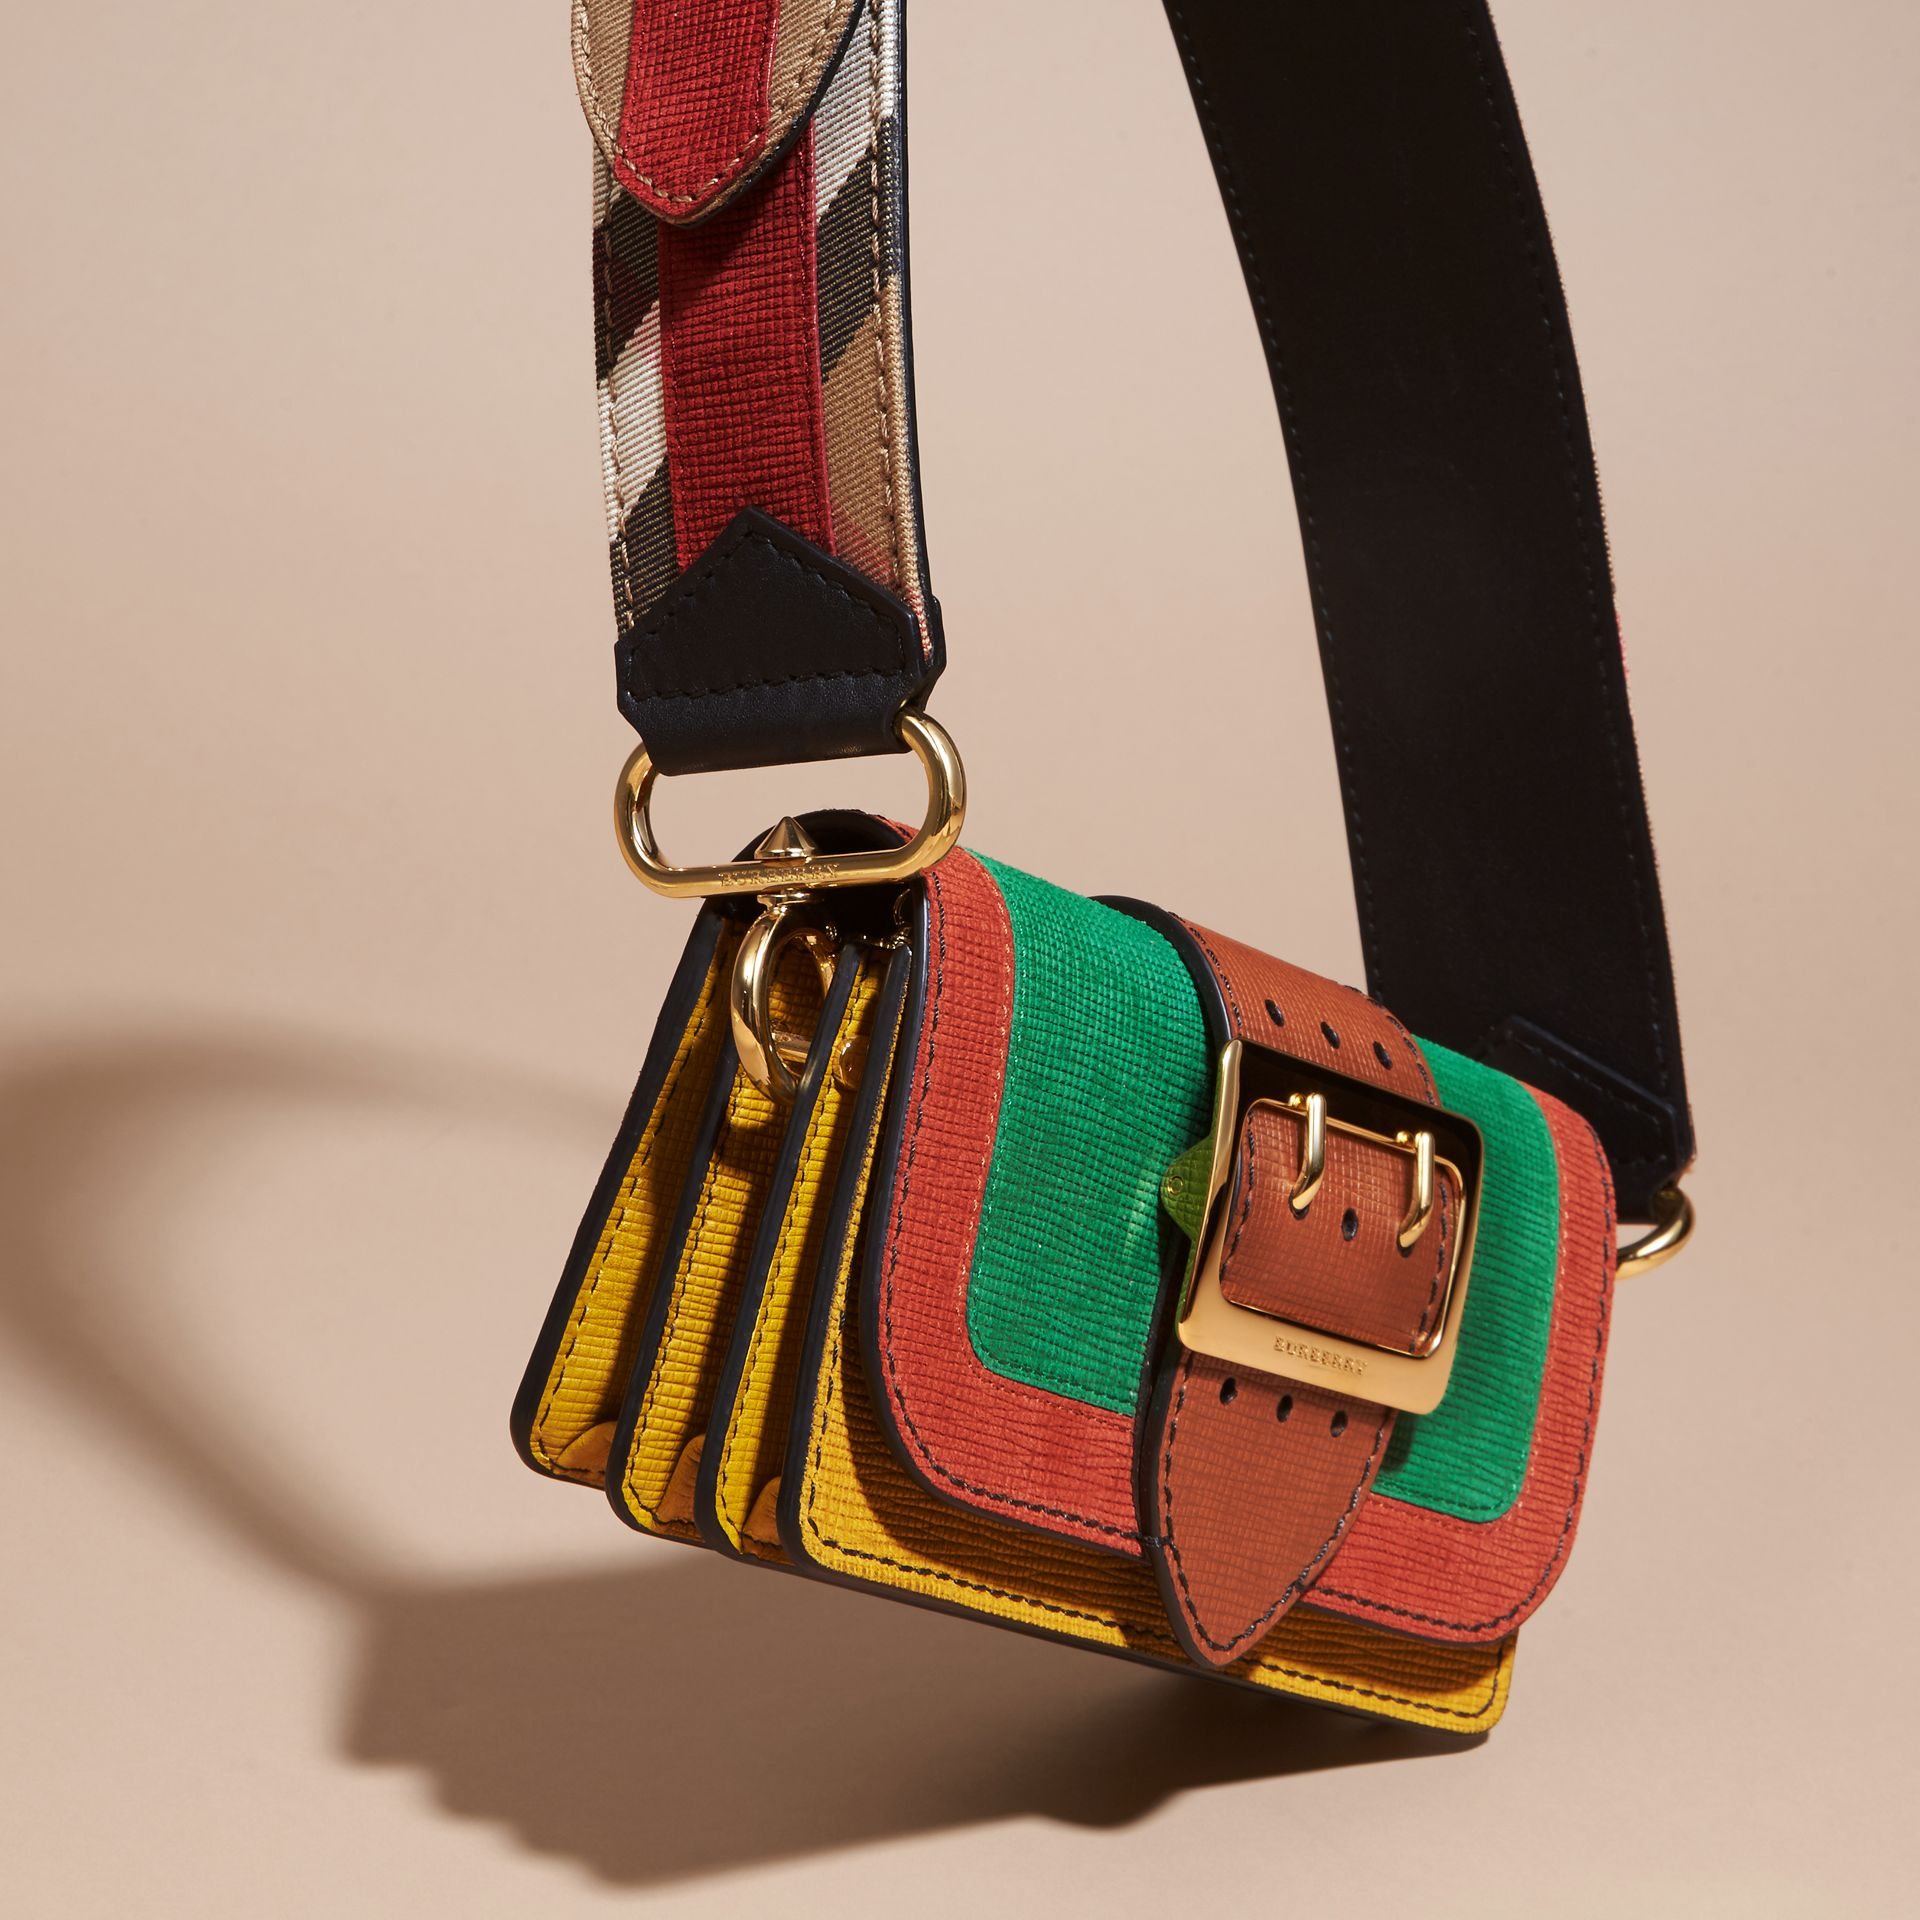 The Small Buckle Bag in Textured Leather in Bright Green - Women | Burberry - gallery image 8